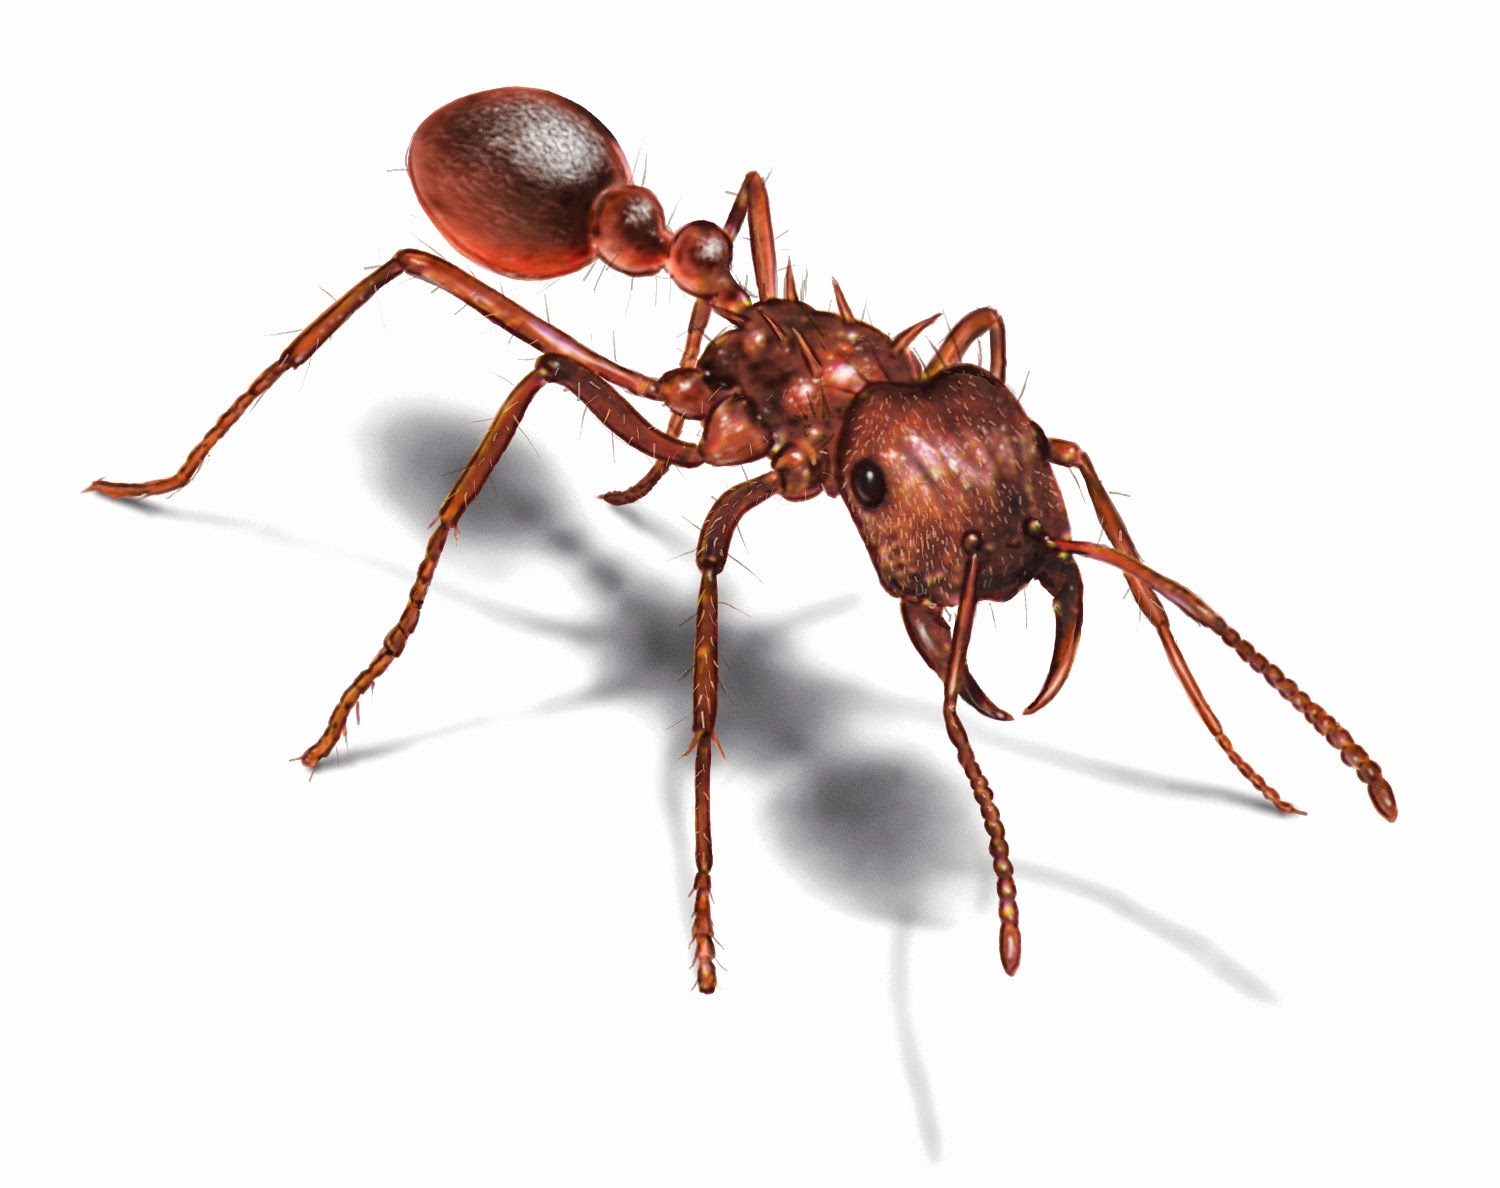 Trap Jaw Ant Facts 4 The Trap-jaw Ant Has The